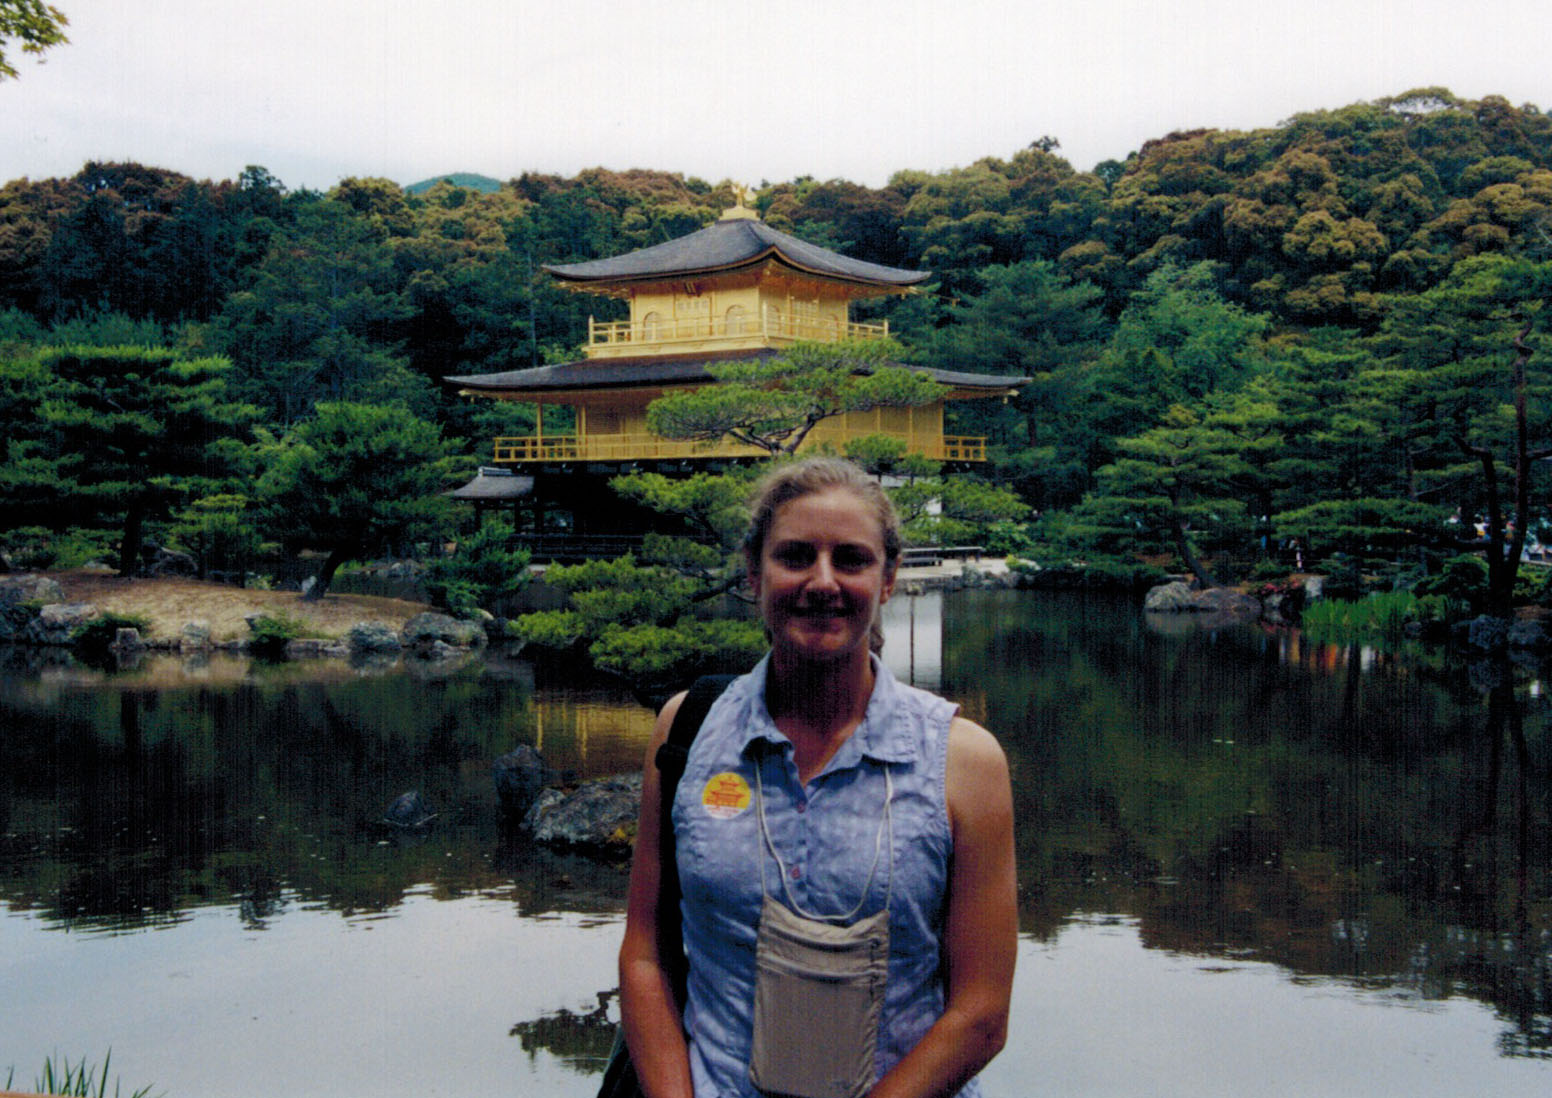 Christi at Kyoto's Golden Pavilion